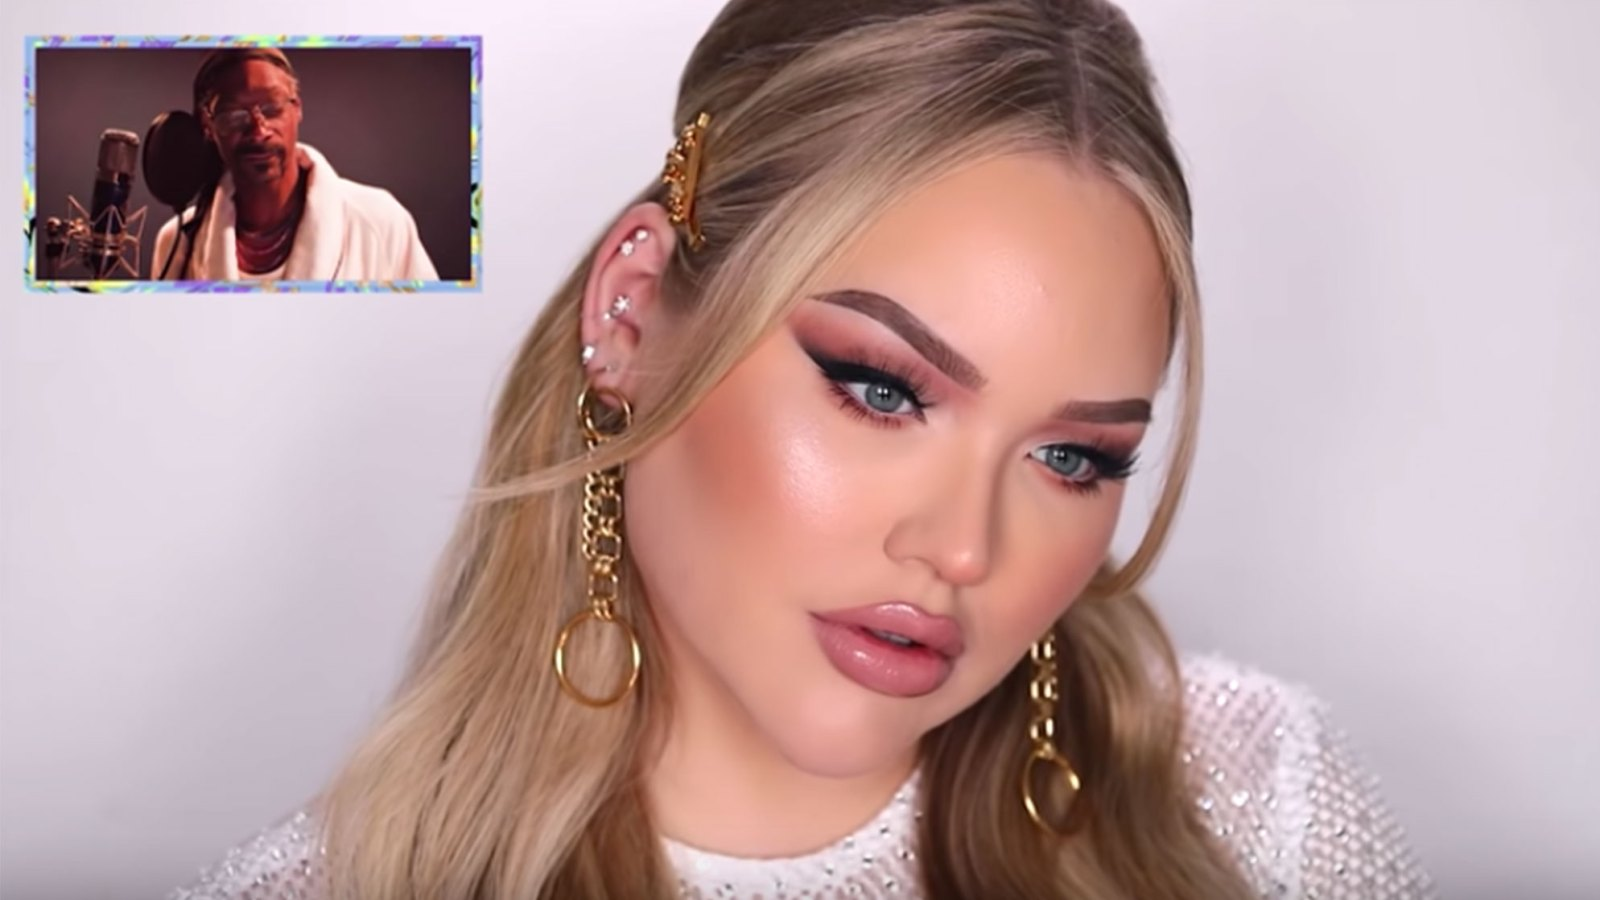 Snoop Dogg Narrating This YouTube Star's Makeup Tutorial Is the Funniest Thing You'll See All Day